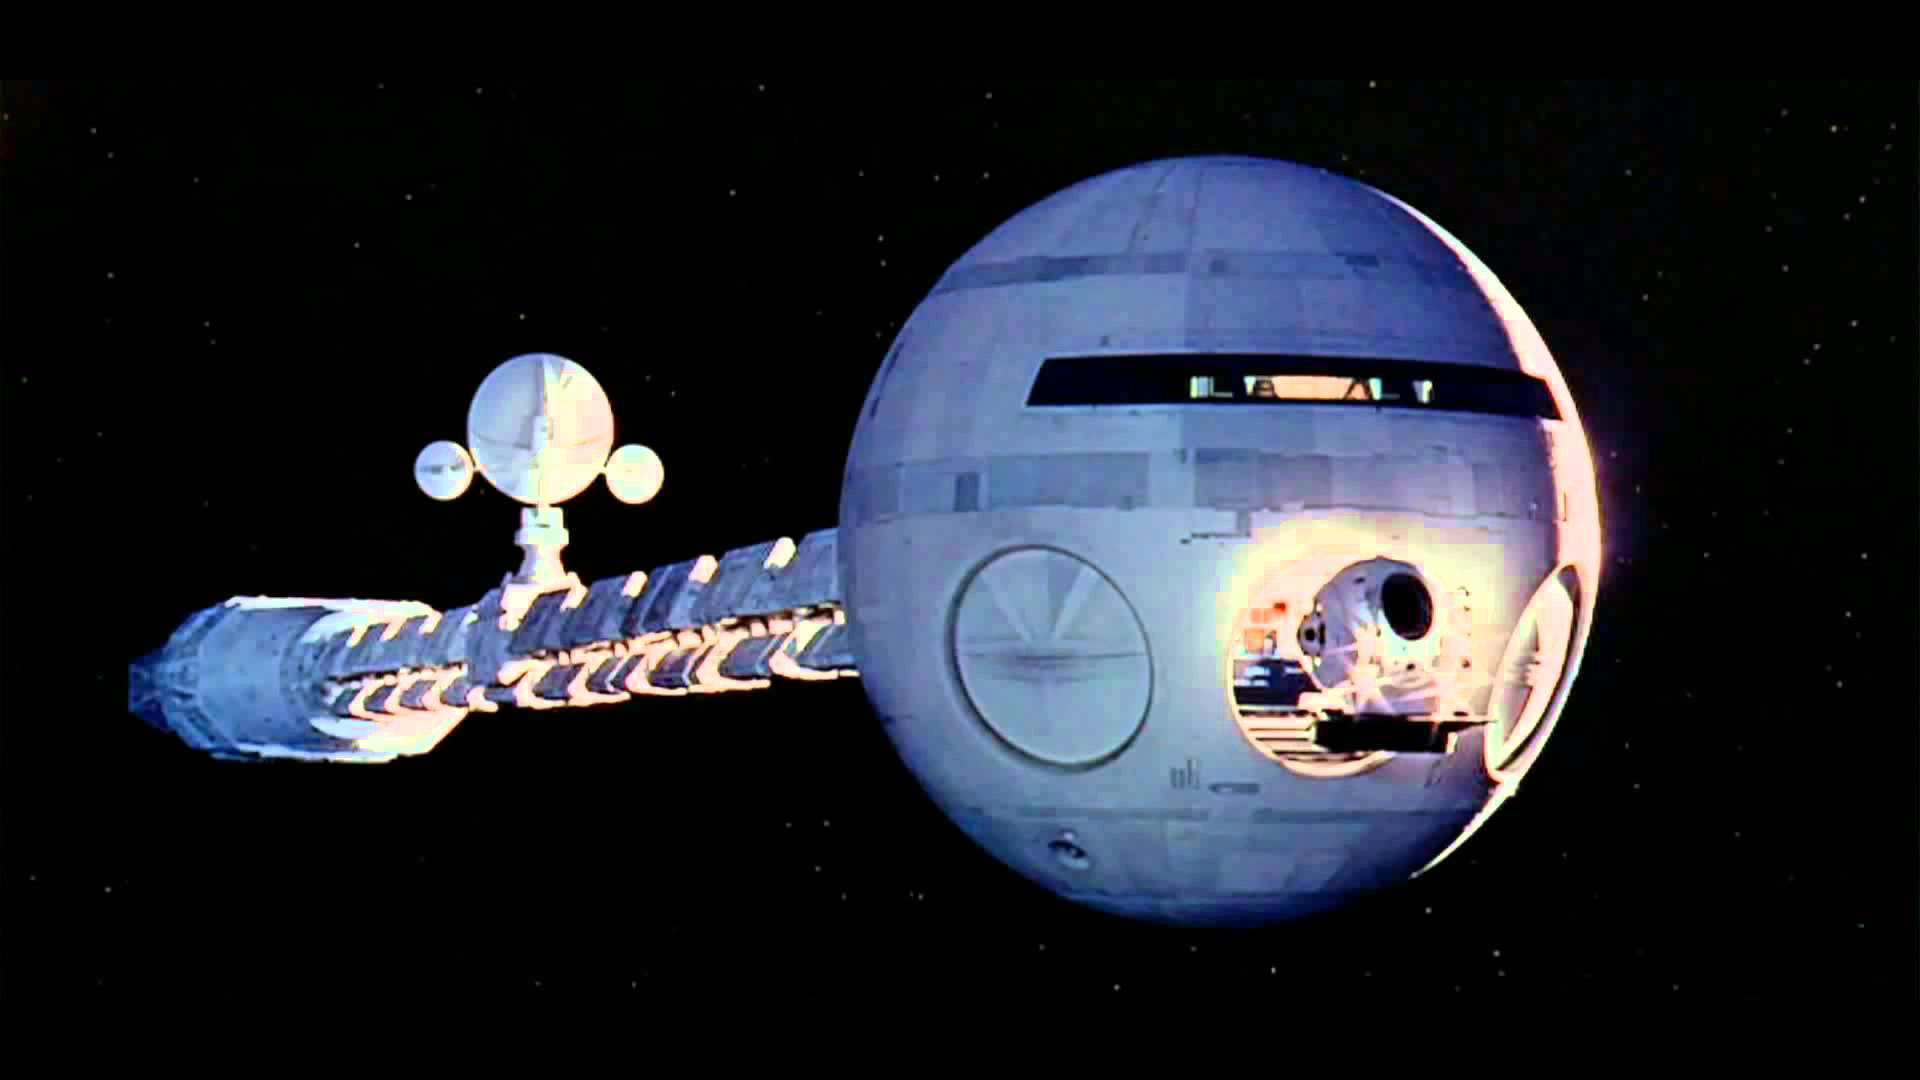 The 25 most iconic sci-fi spaceships, as chosen by a Hollywood VFX